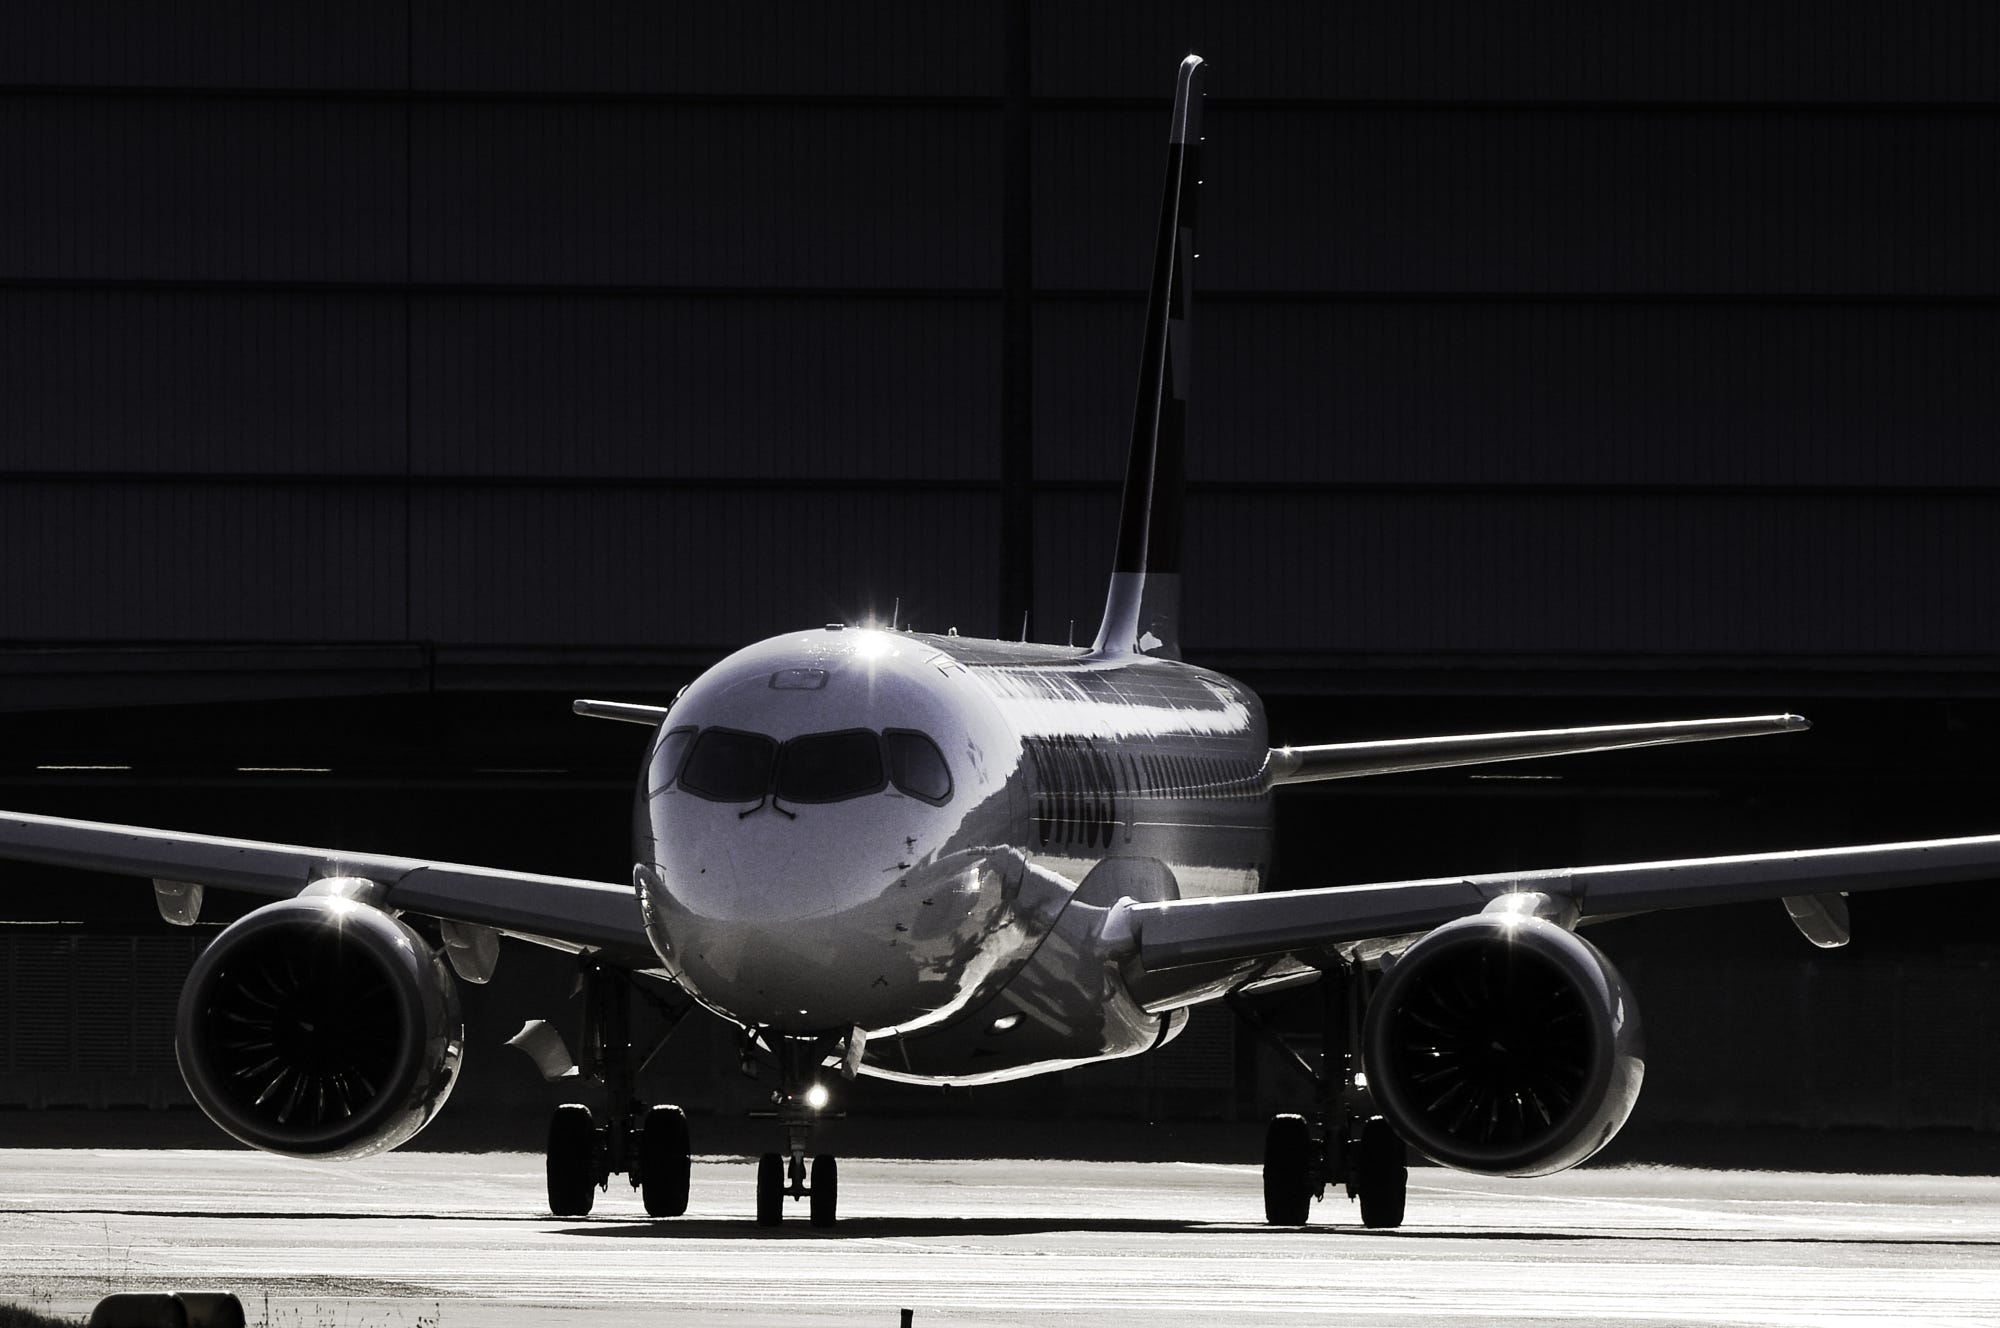 LCY: How a leader in short-haul trips can be a long haul leader